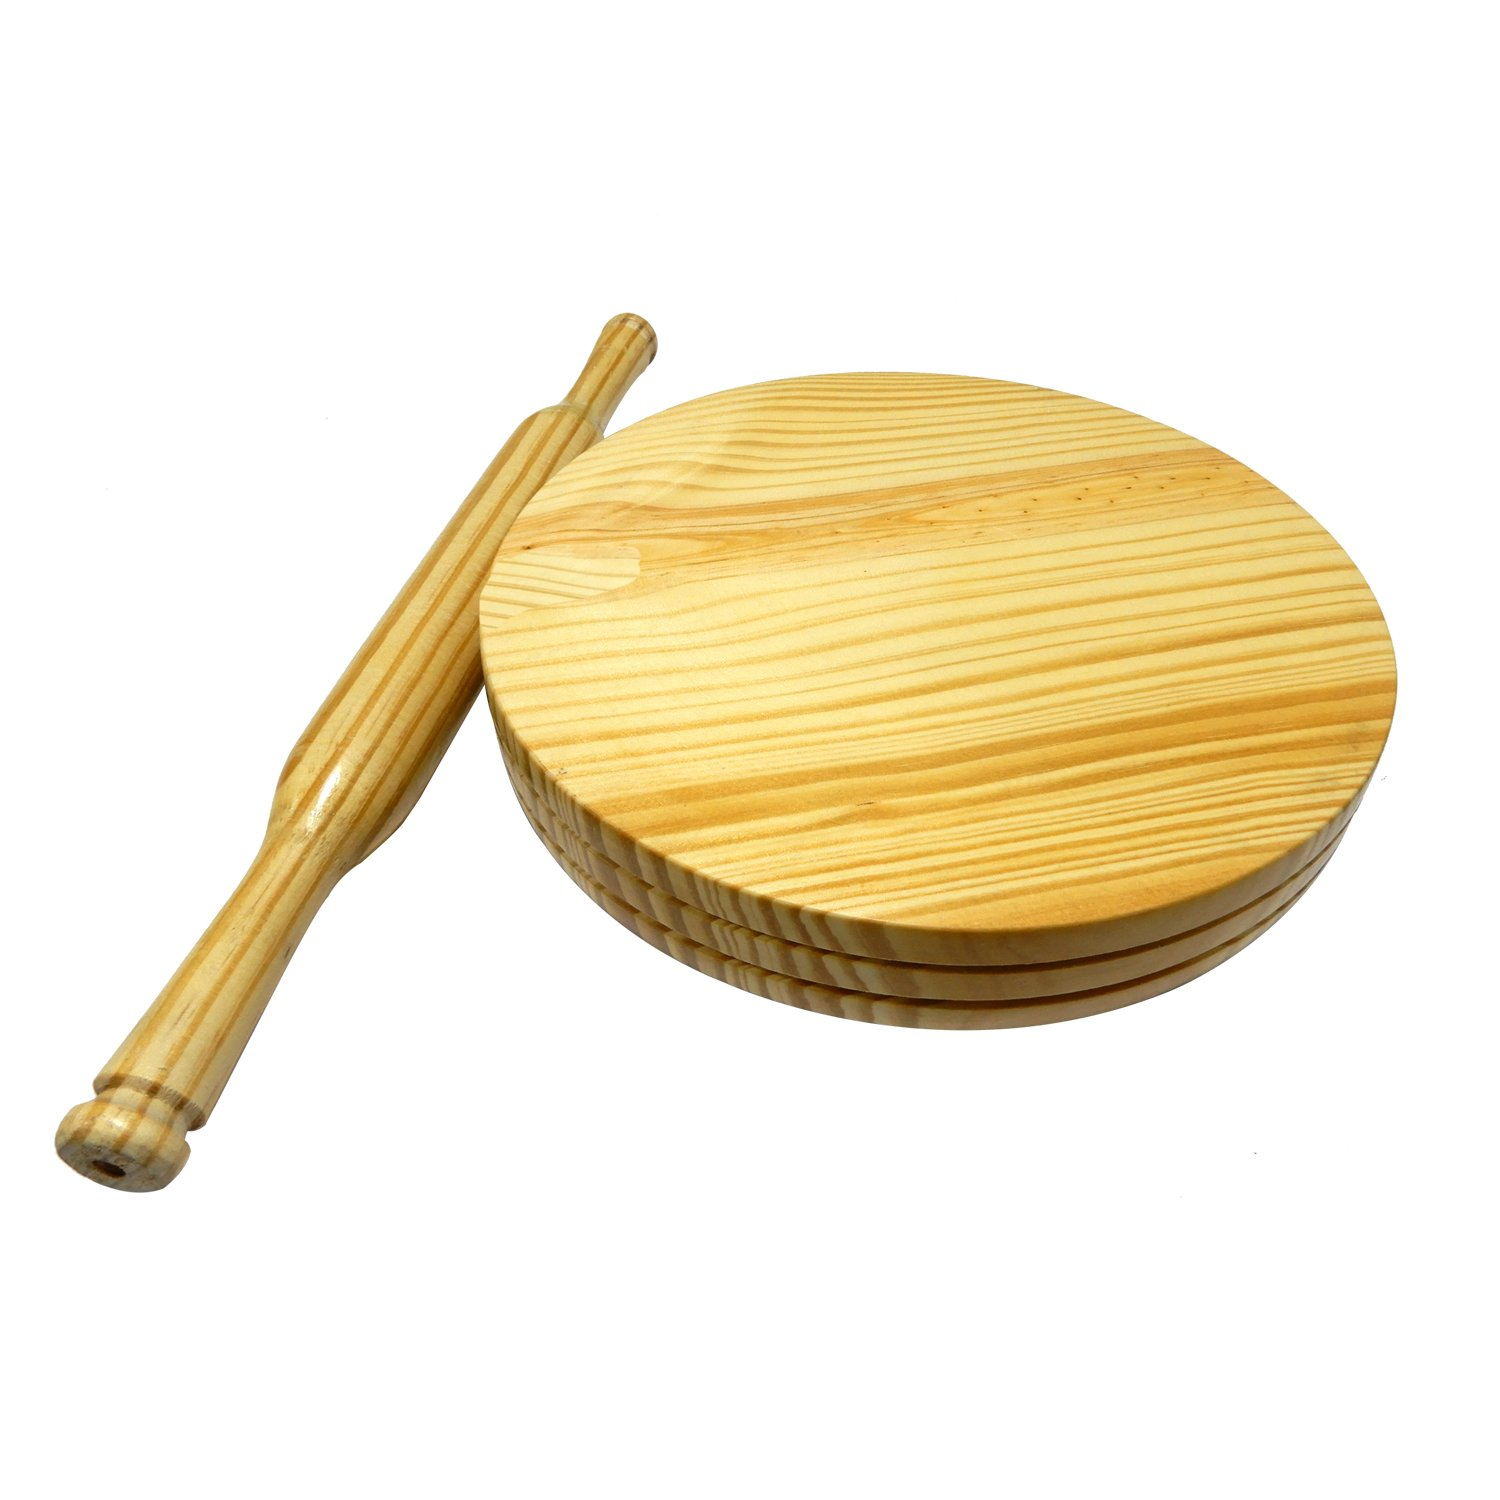 MAKER SMALL ROTI WITH ROLLING PIN CHAPATI WOODEN CHAKLA BELAN CHAKLA 9 INCH Easter Day // Mother Day // Good Friday Gift CIRCULAR BOARD